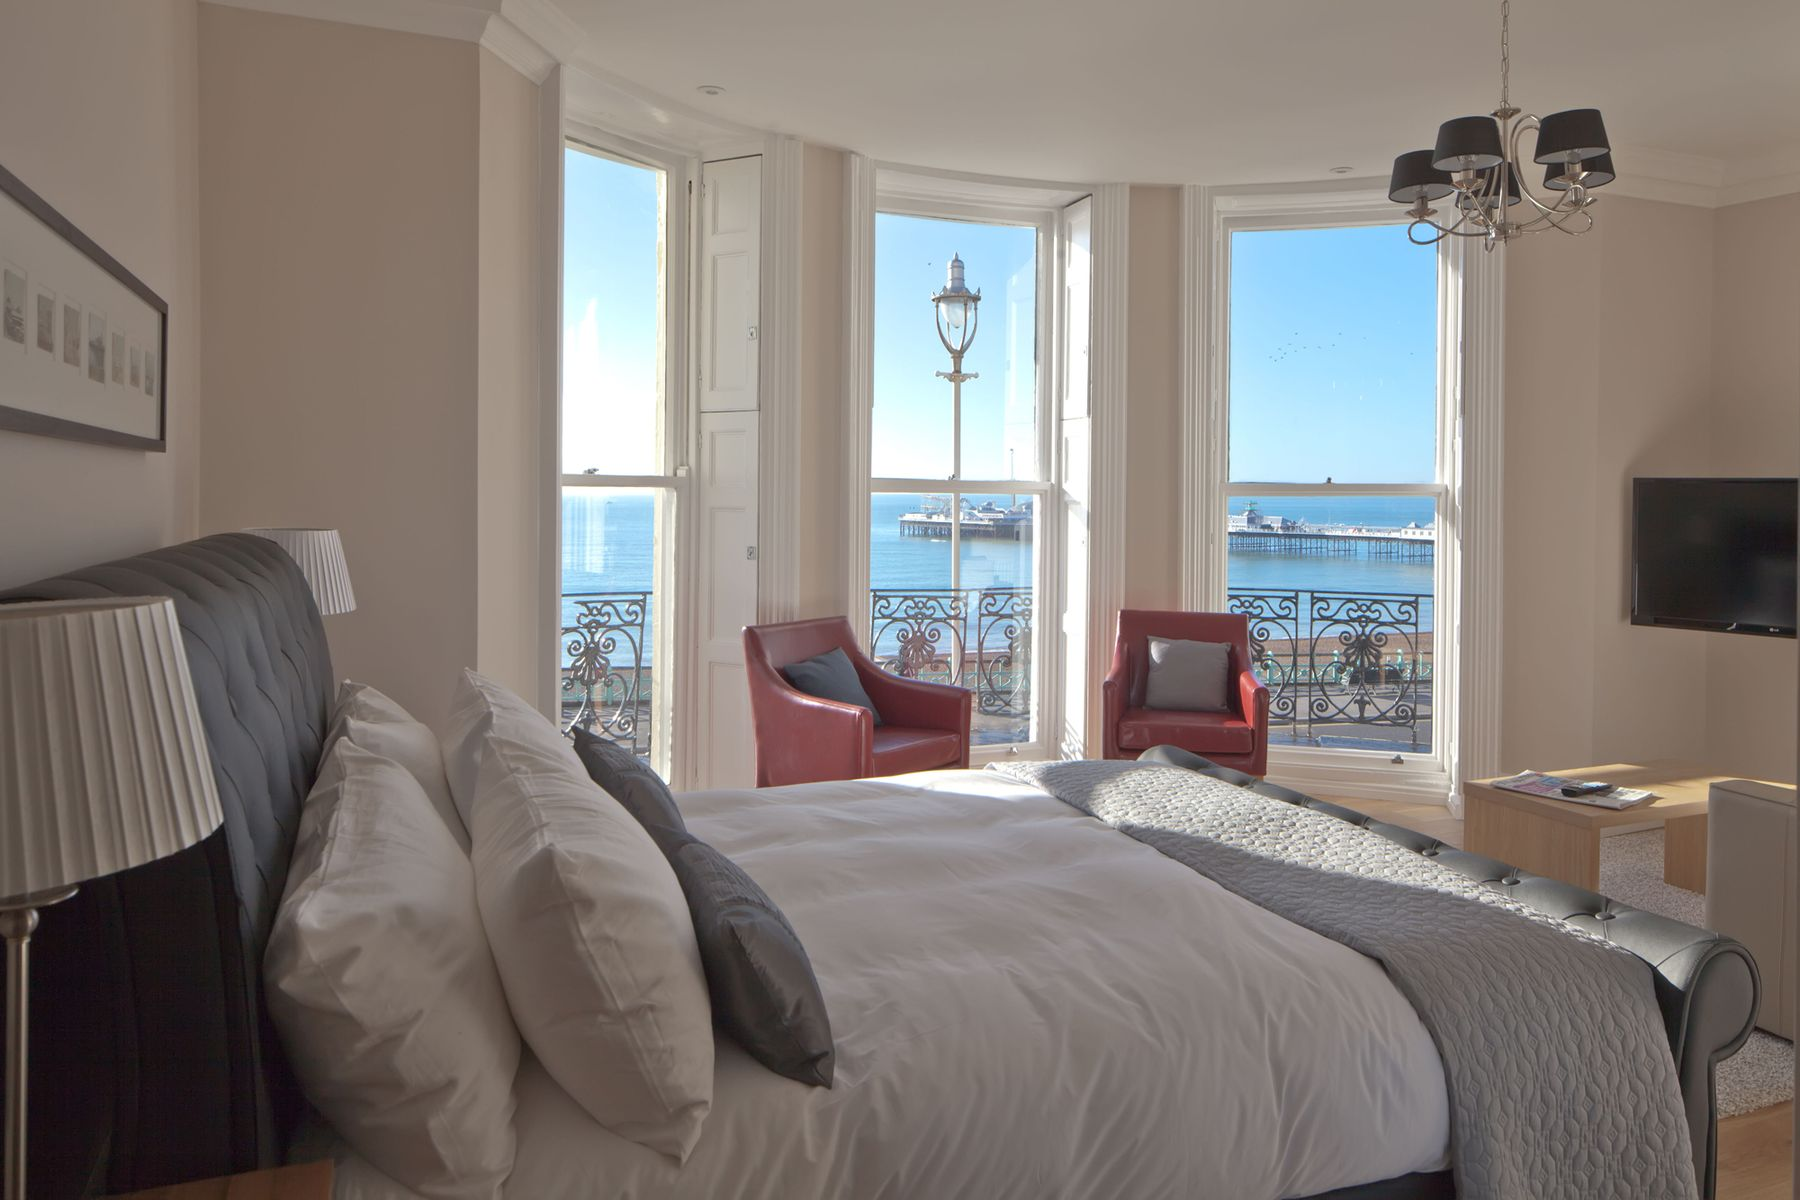 A Room with a View in Brighton is one of the UK's most unusual hotels for its top-notch location